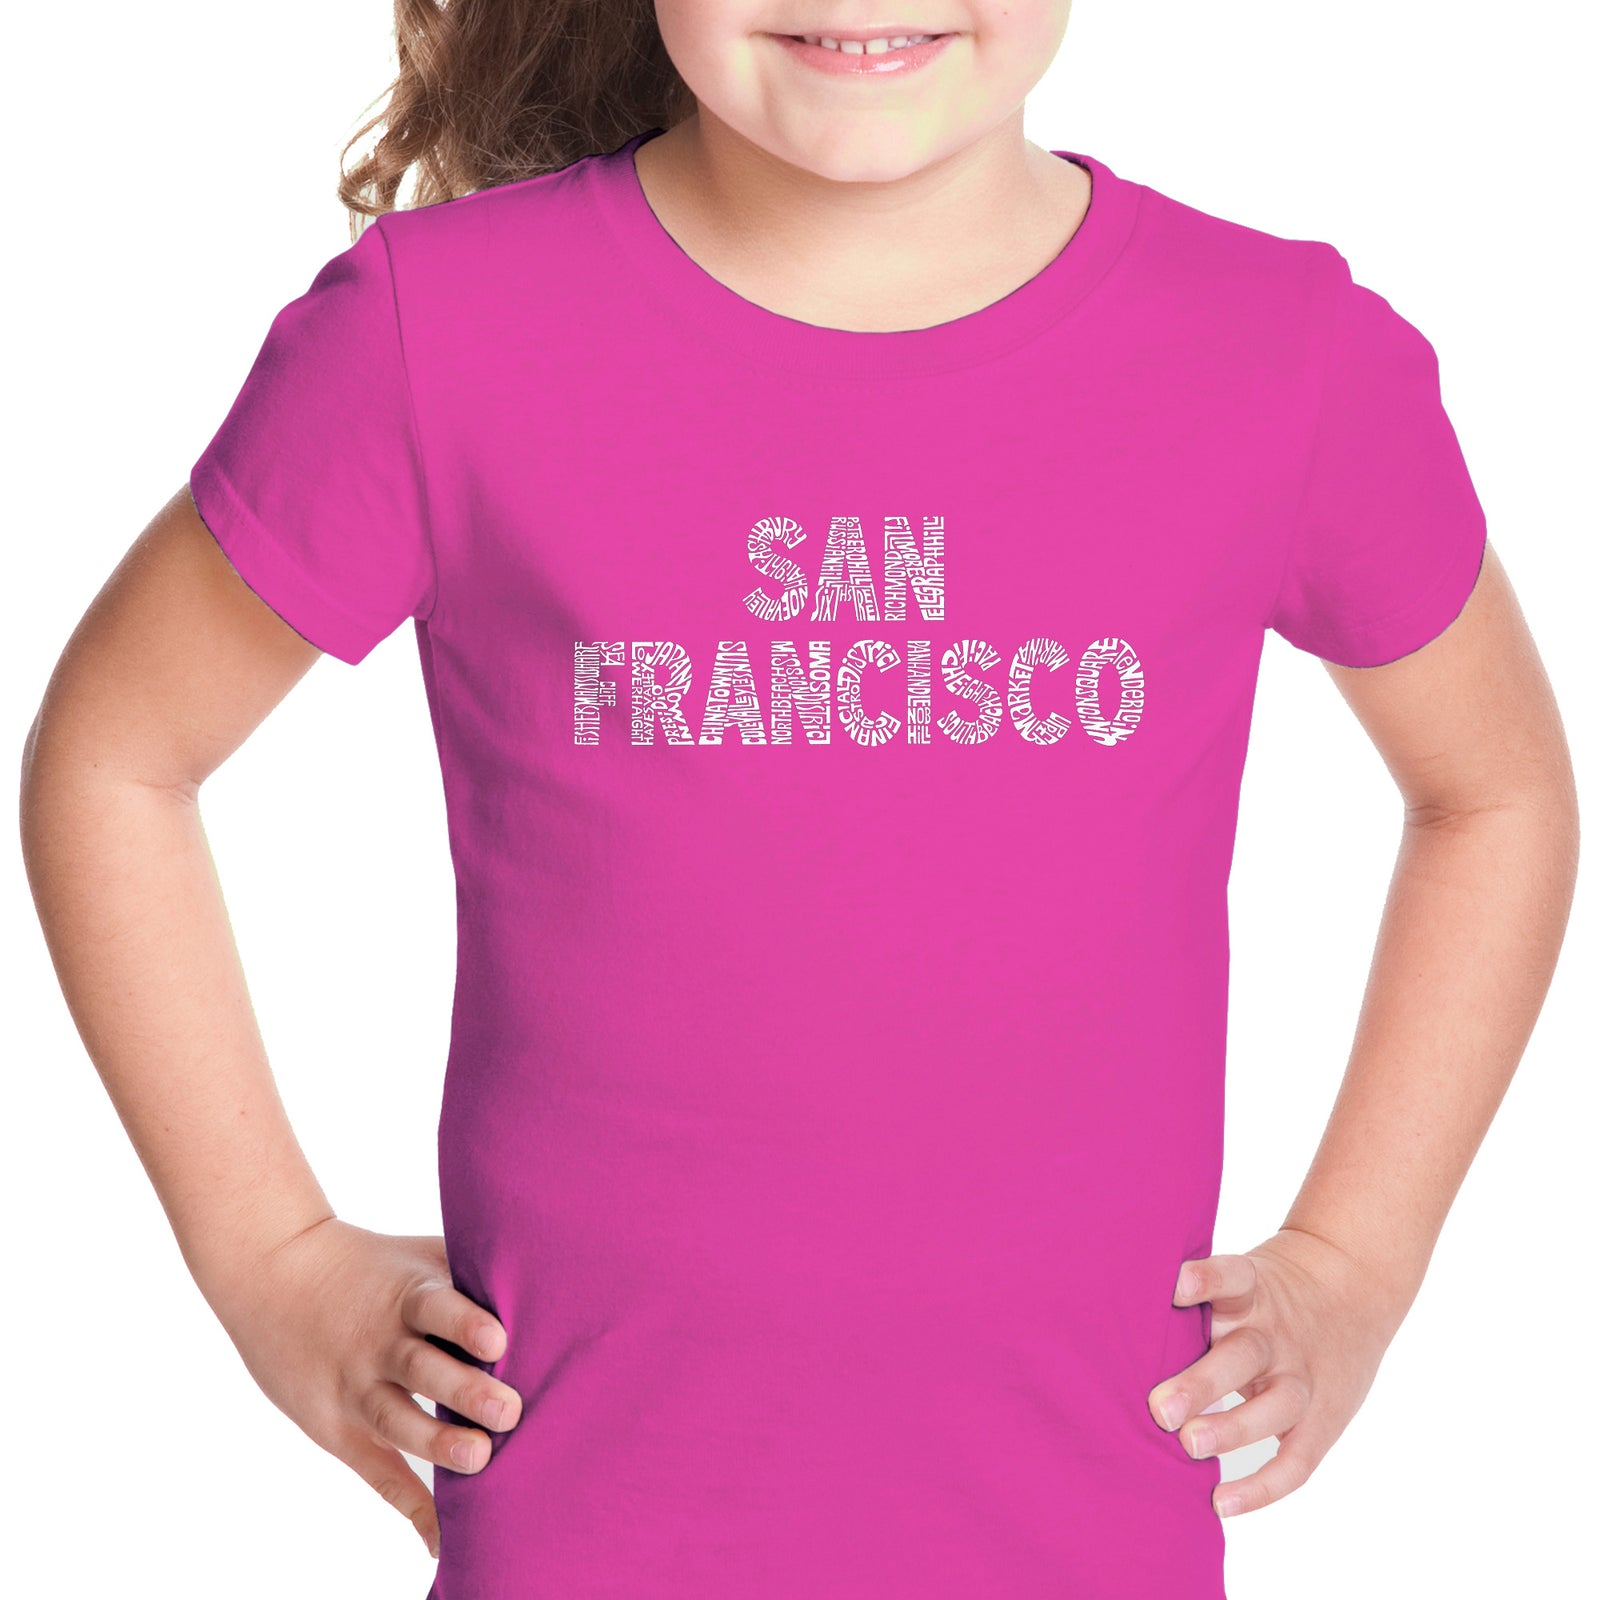 Girl's T-shirt - SAN FRANCISCO NEIGHBORHOODS